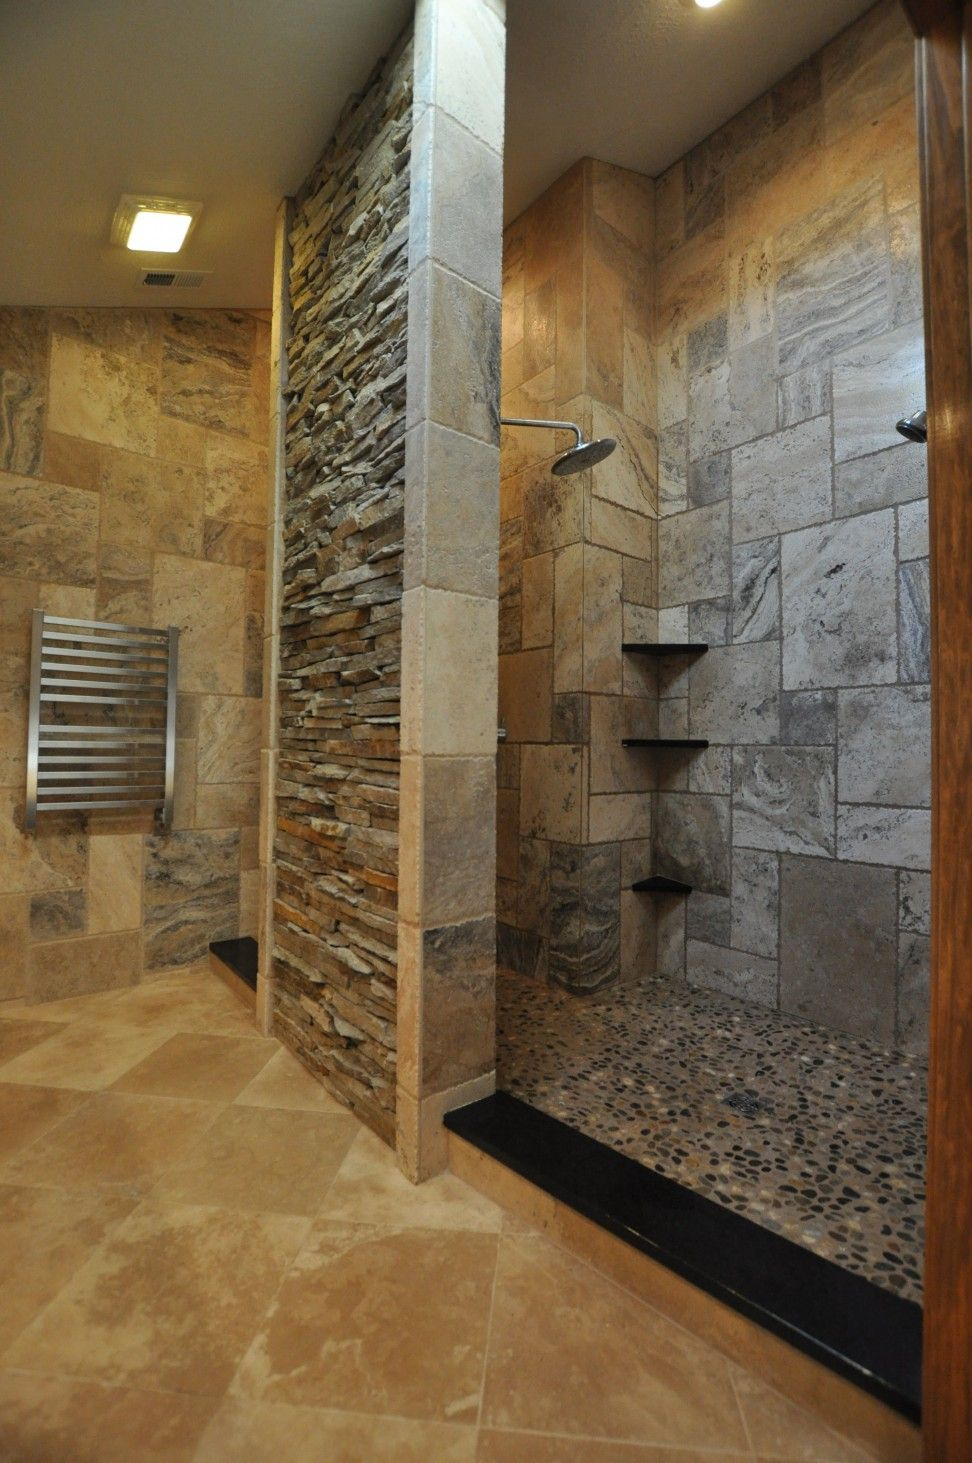 Small Shower Room Design And Bathroom Color Schemes Cream Inspiration For Designs In Condos